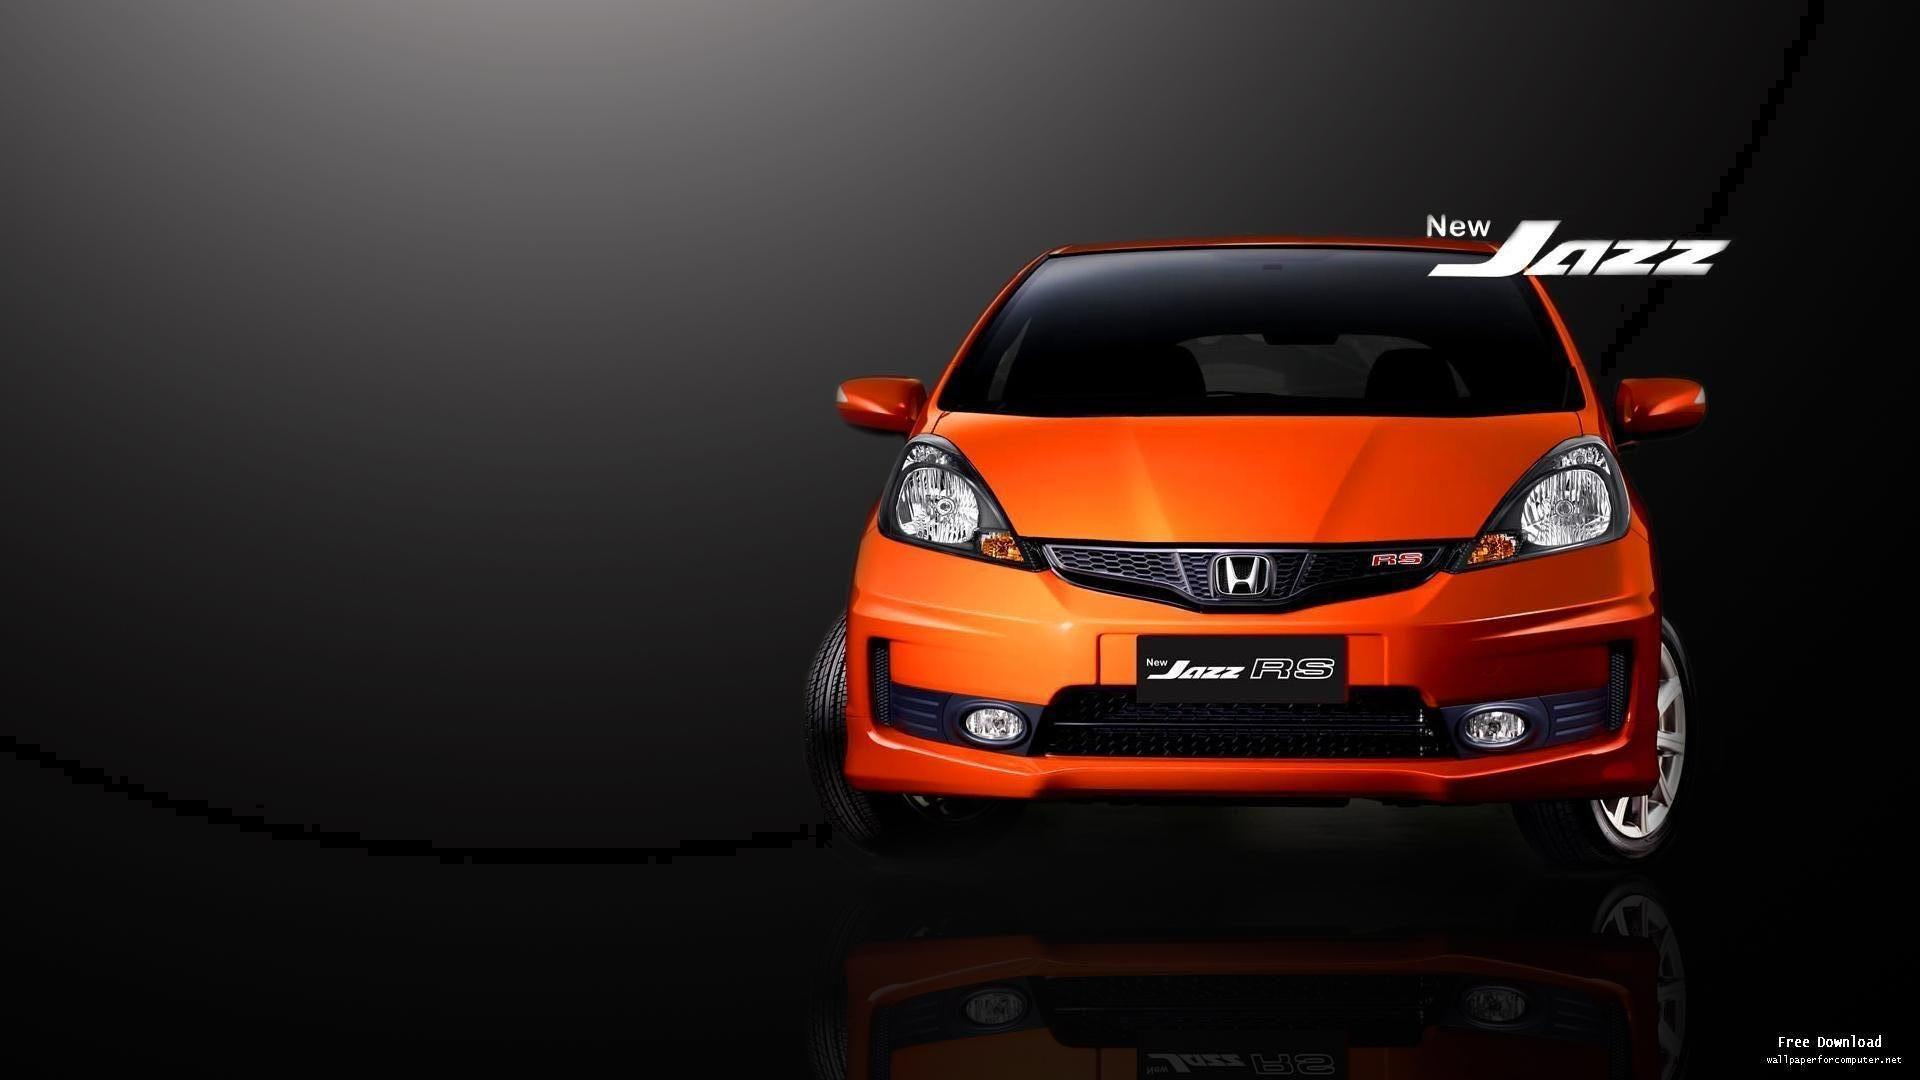 HONDA JAZZ HD WALLPAPERS